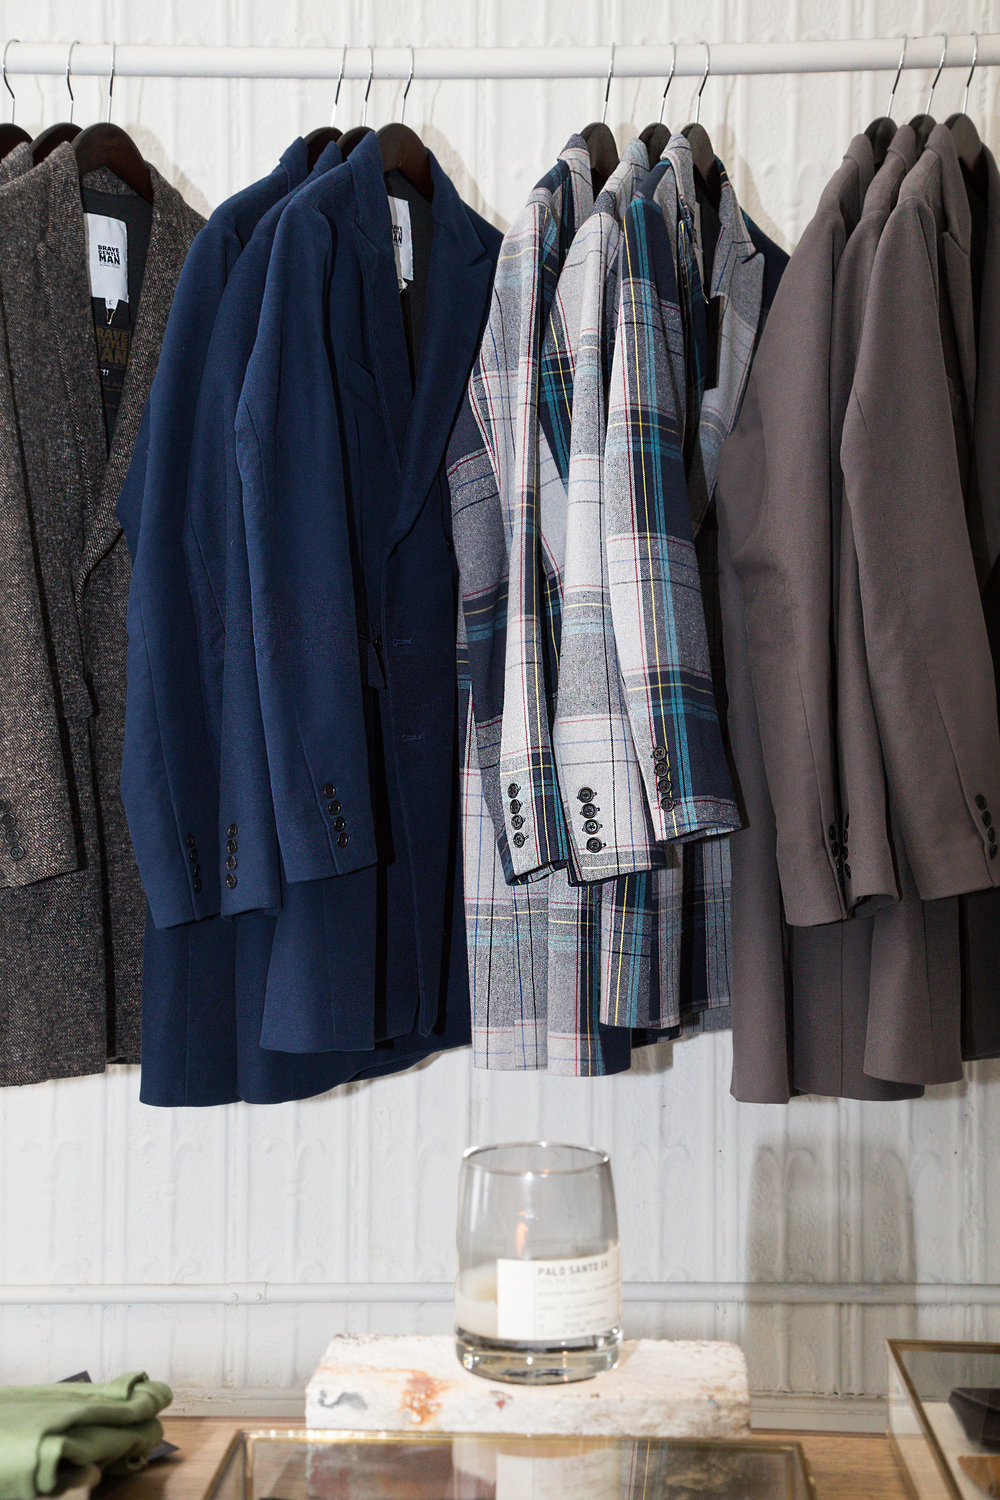 Outerwear selection.